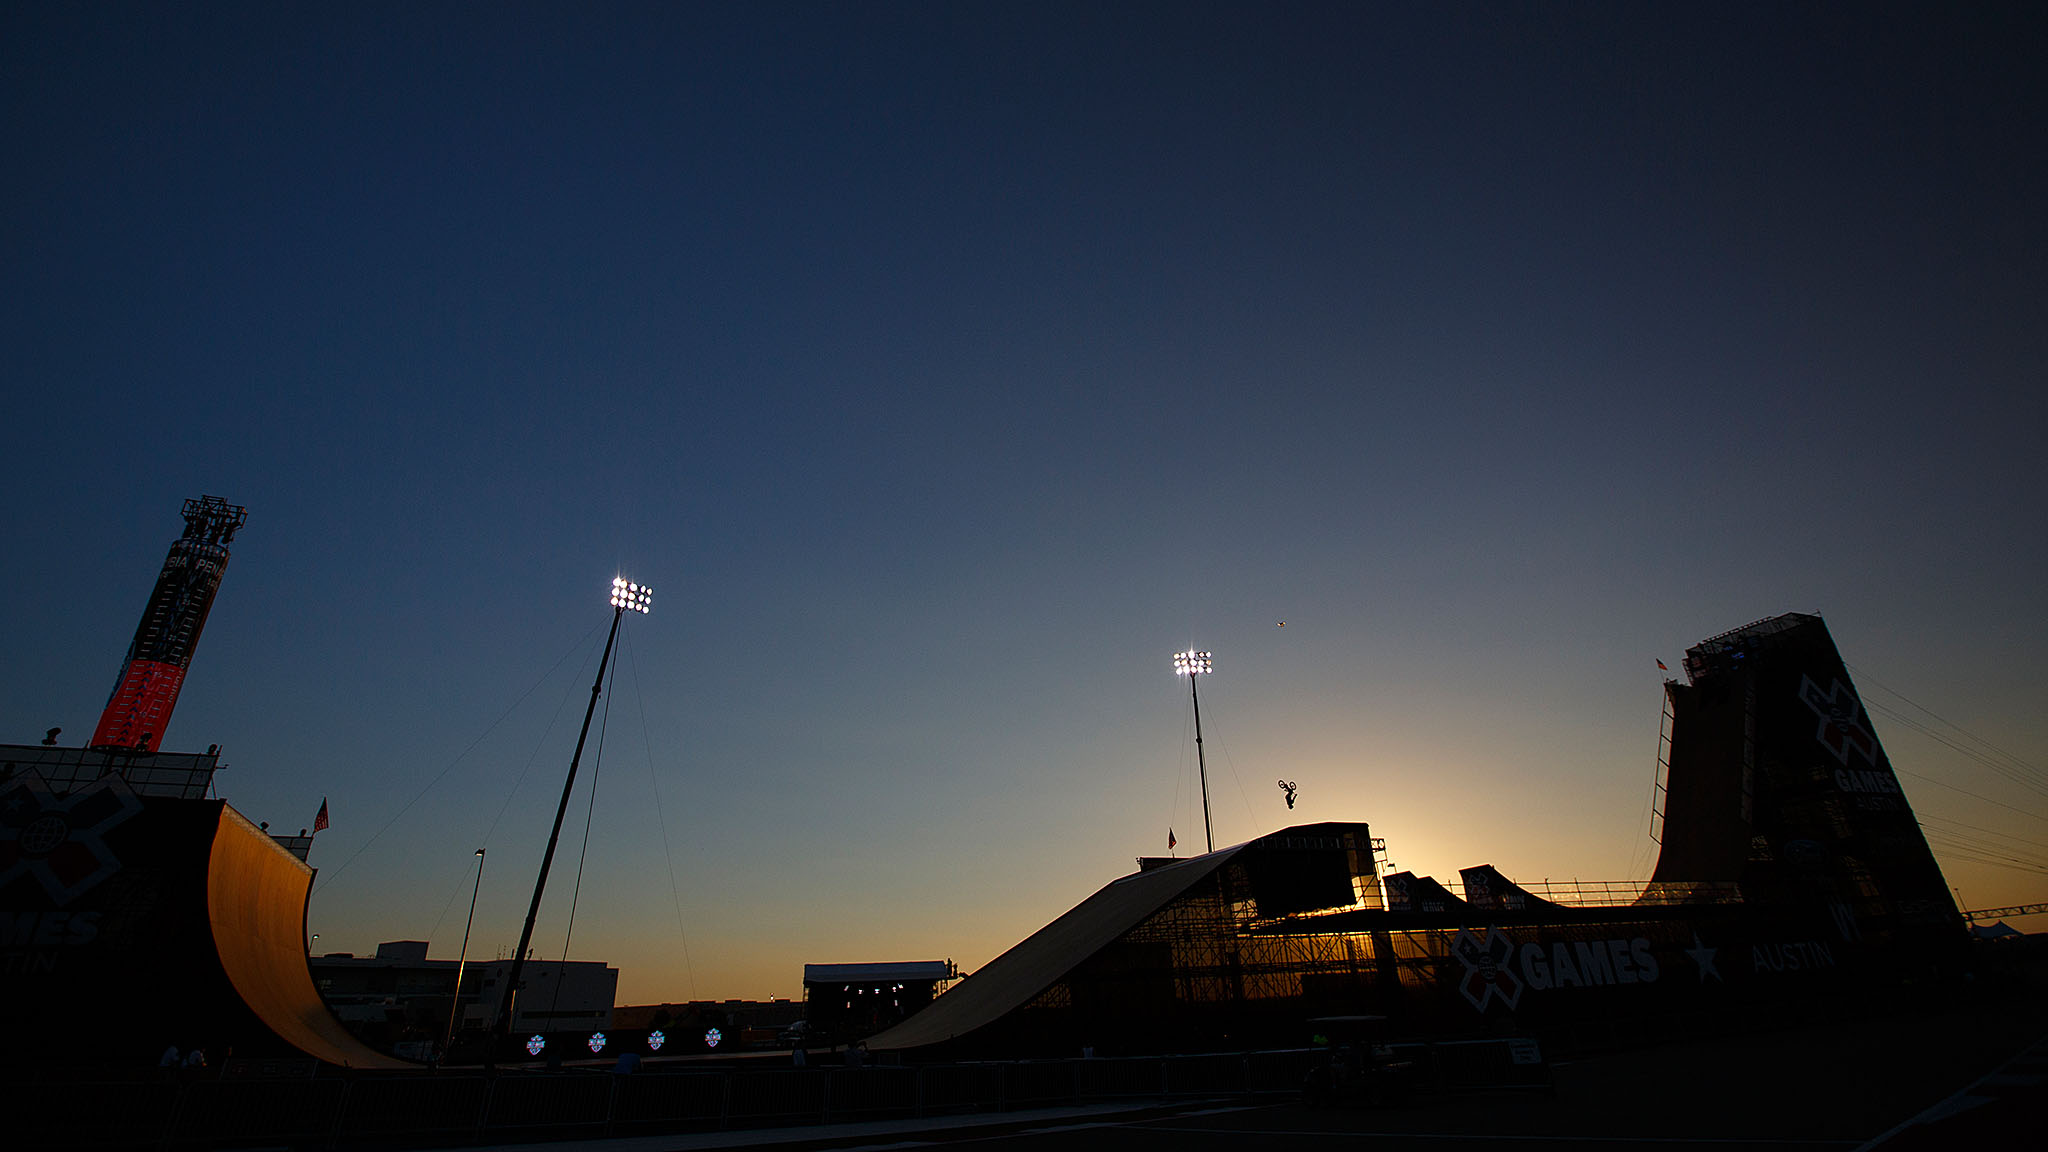 2014 marked the first time since the introduction of the MegaRamp to X Games that it had been constructed in Texas. Here, an unknown BMX Big Air competitor gets in some twilight practice before the start of X Games Austin 2014.